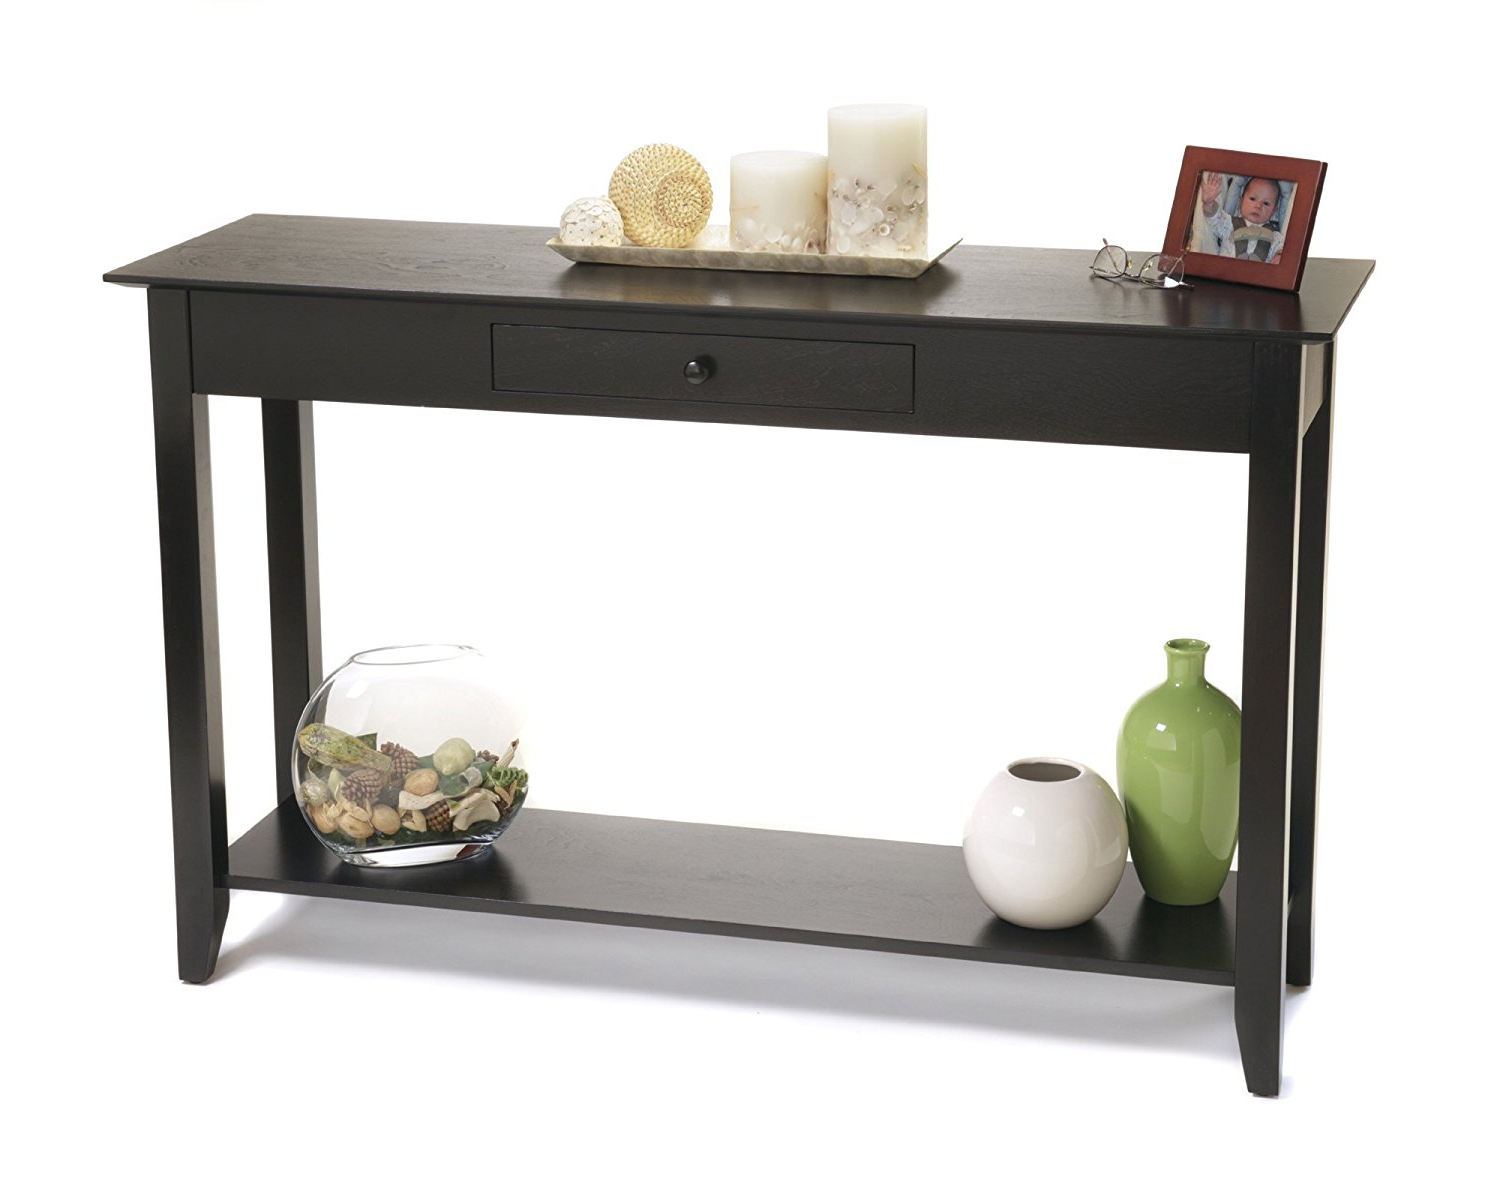 Sofa Table: Amusing Black Sofa Table Ikea Ideas Ikea White Sofa For Parsons Clear Glass Top & Brass Base 48x16 Console Tables (View 14 of 20)